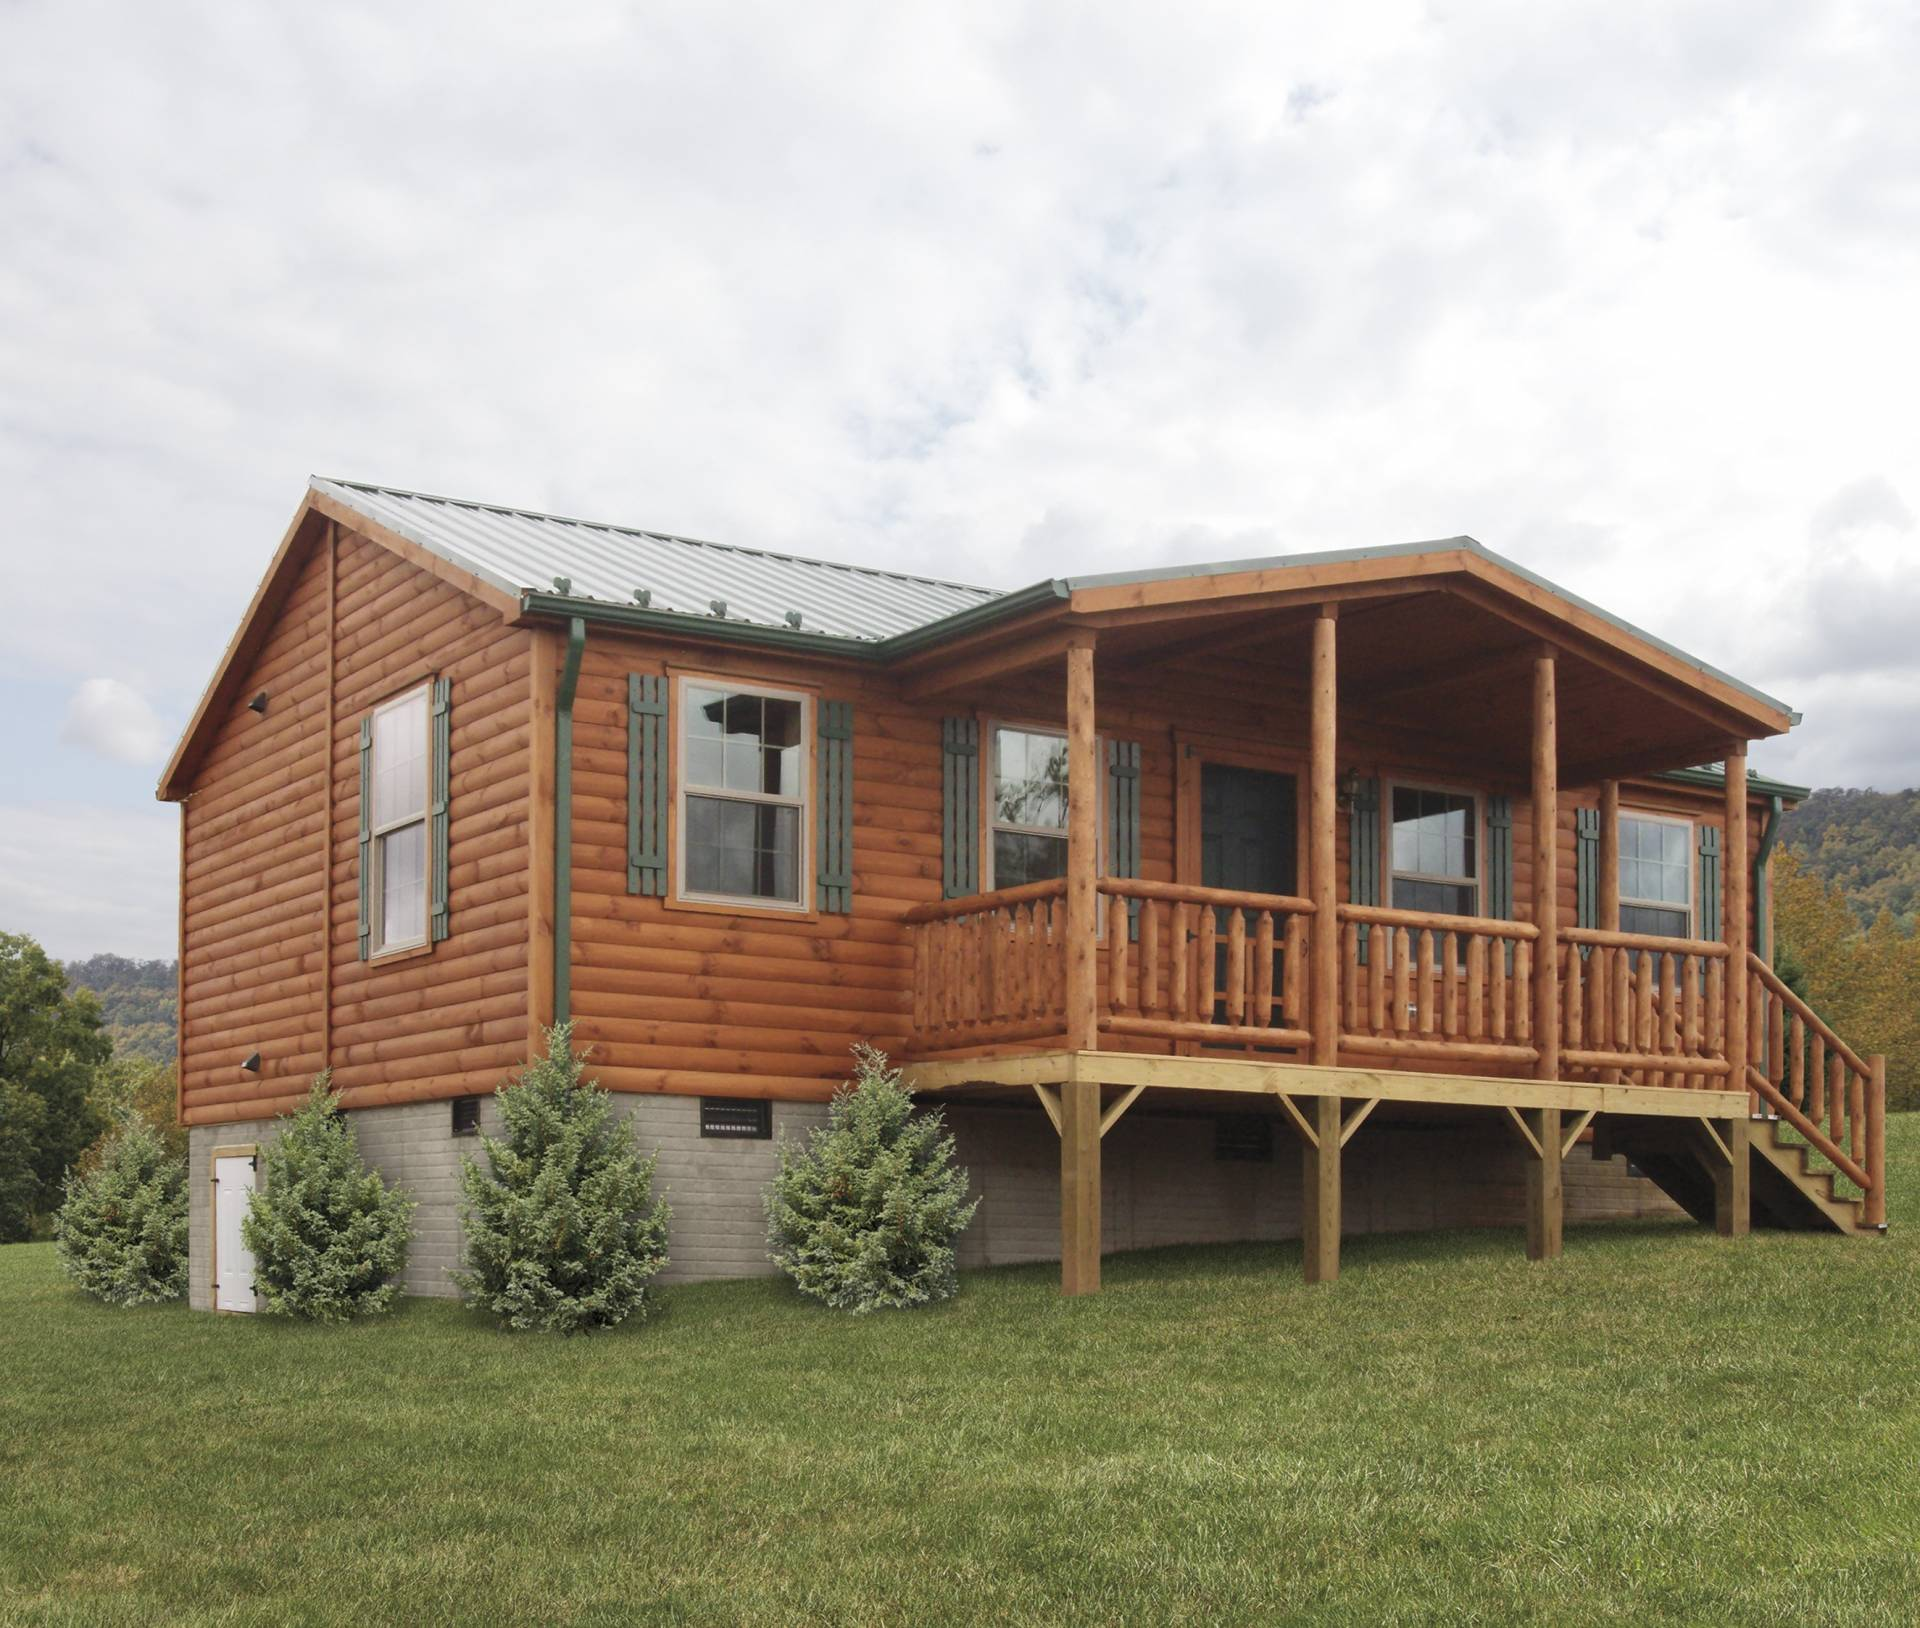 Modular log homes ct homemade ftempo for Log cabins homes